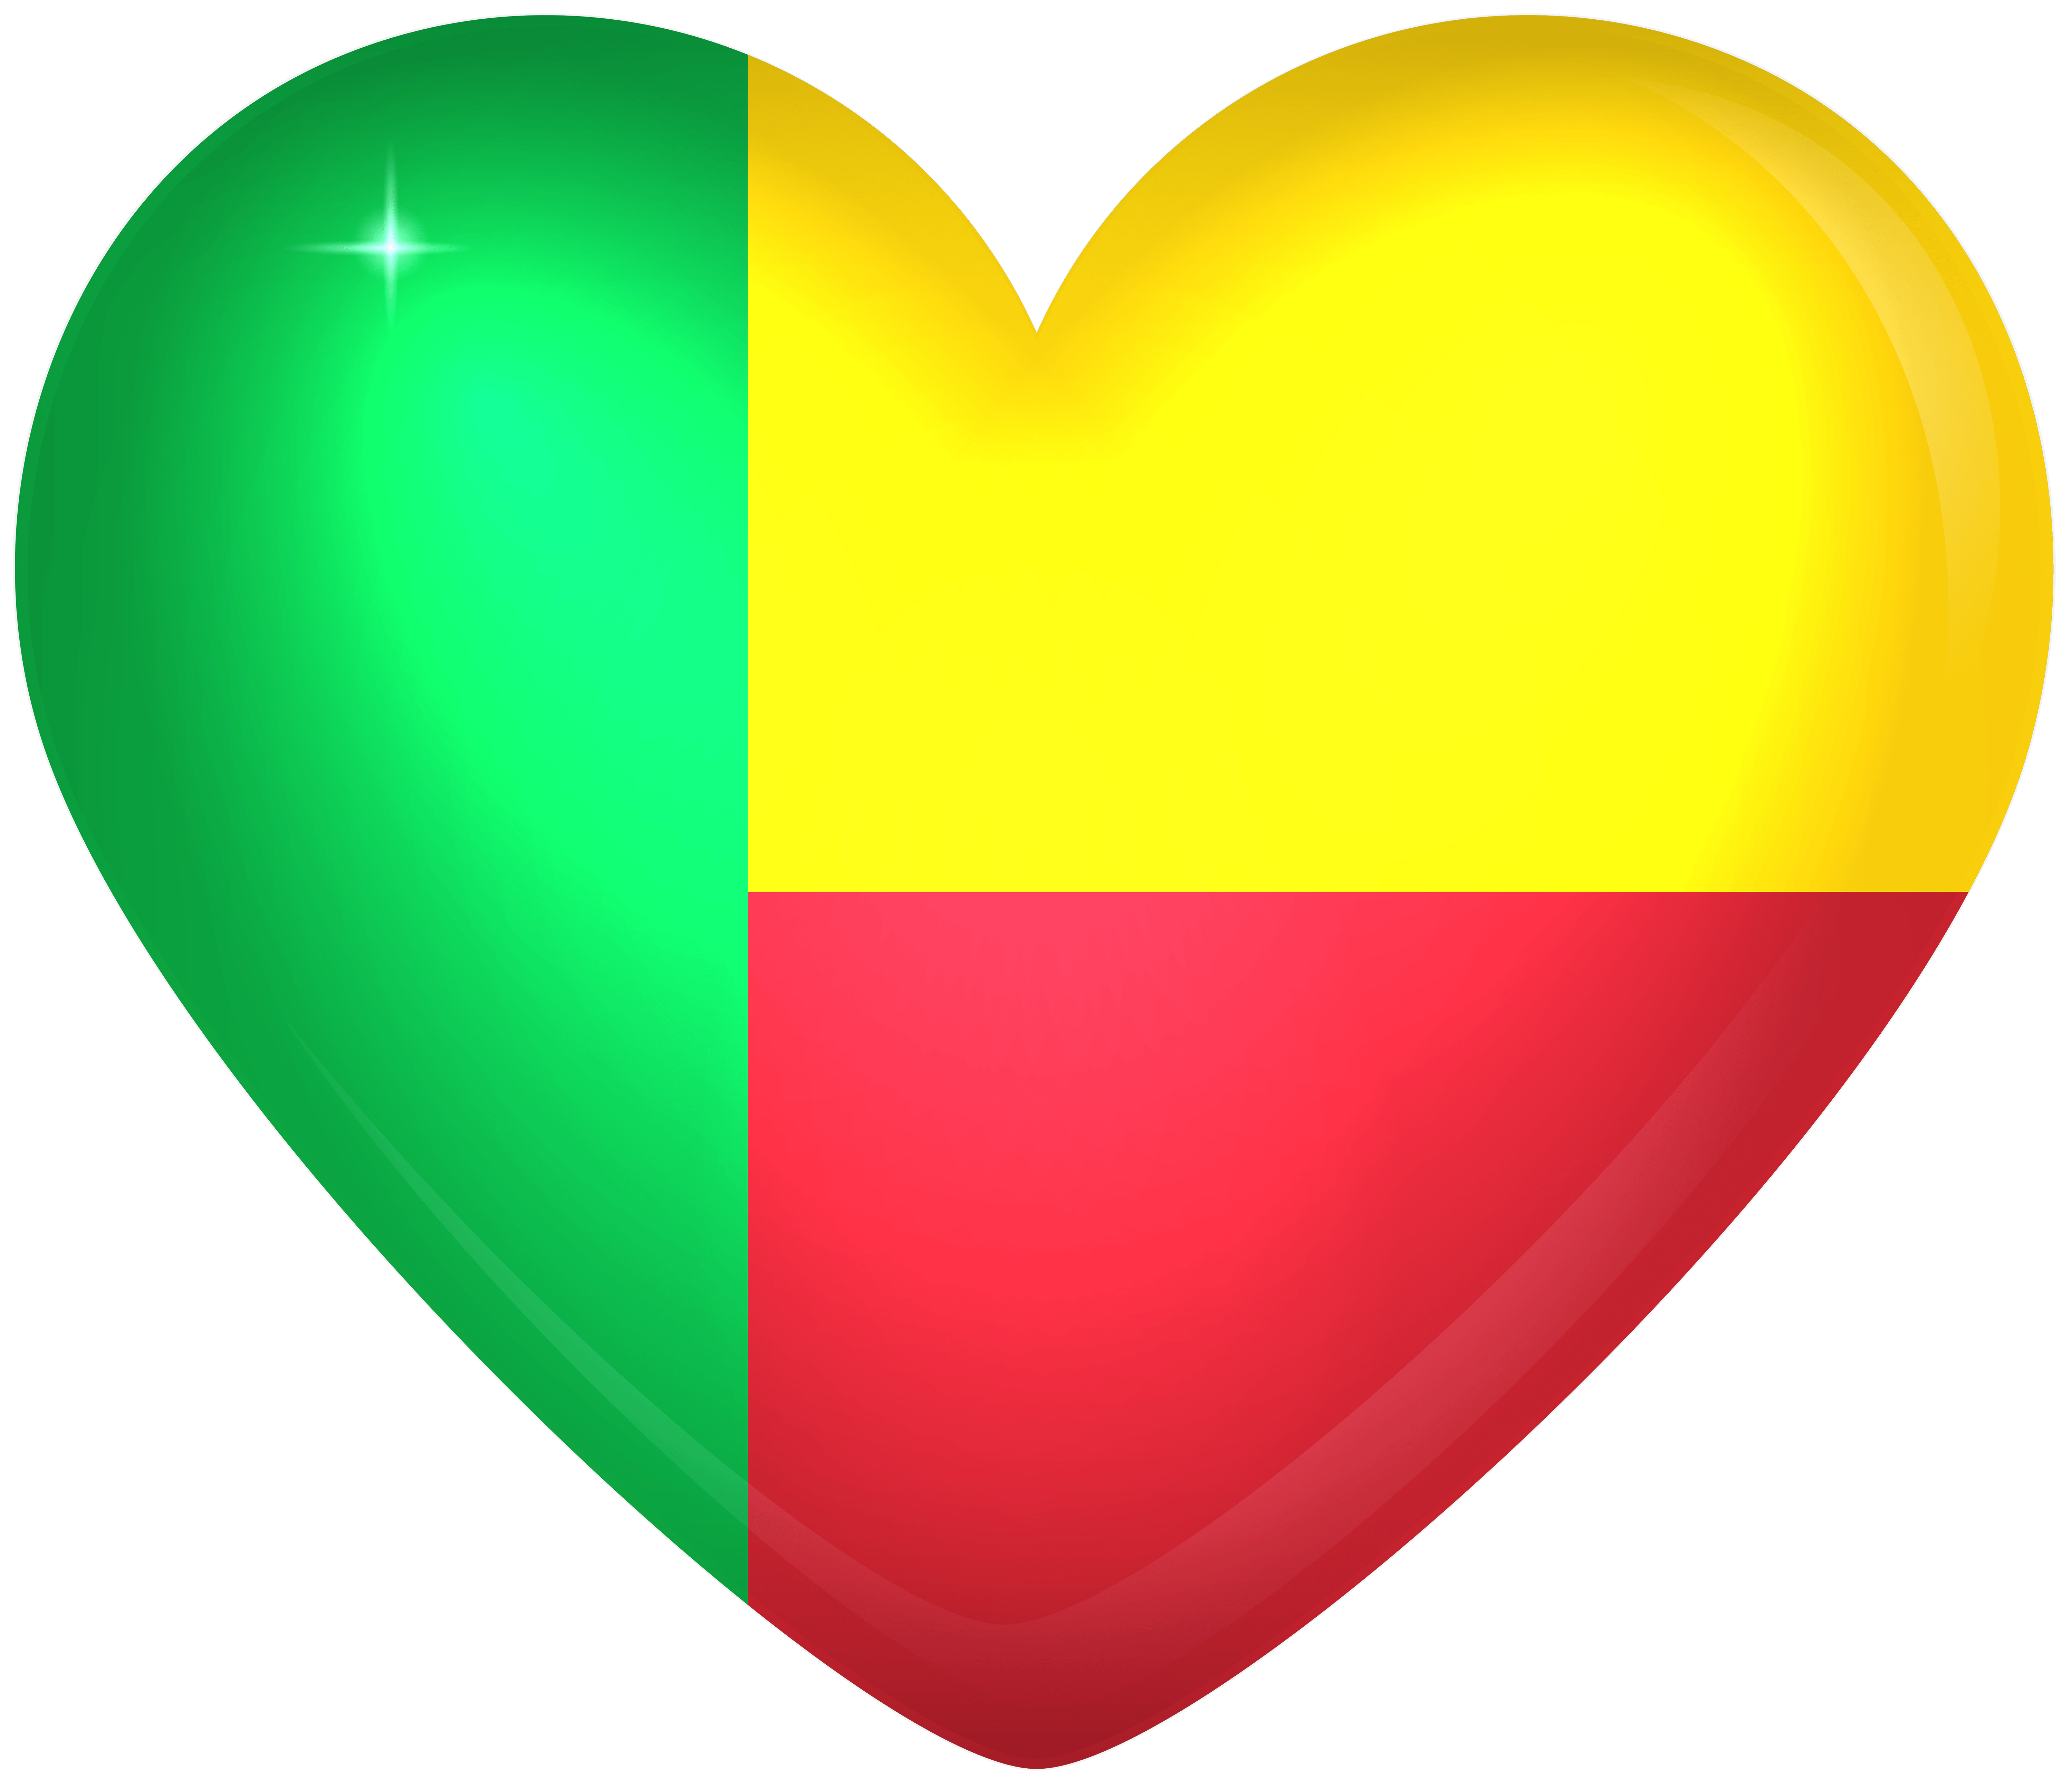 Benin Large Heart Flag | Gallery Yopriceville - High-Quality Images ...